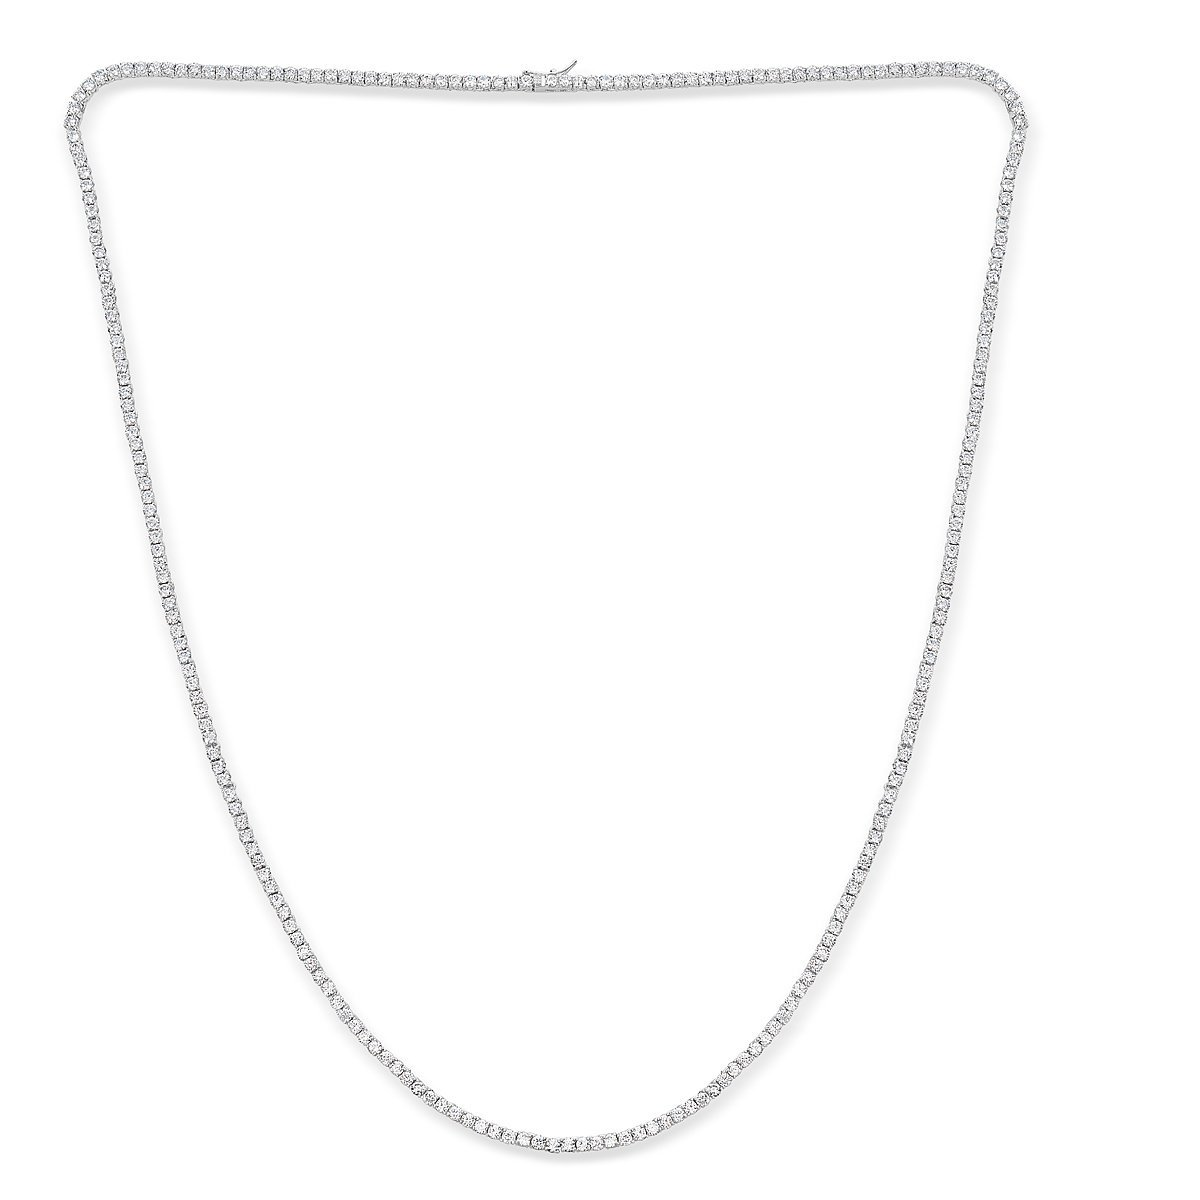 Platinum Plated Sterling Silver Cubic Zirconia Tennis Necklace by Caratina (Image #5)